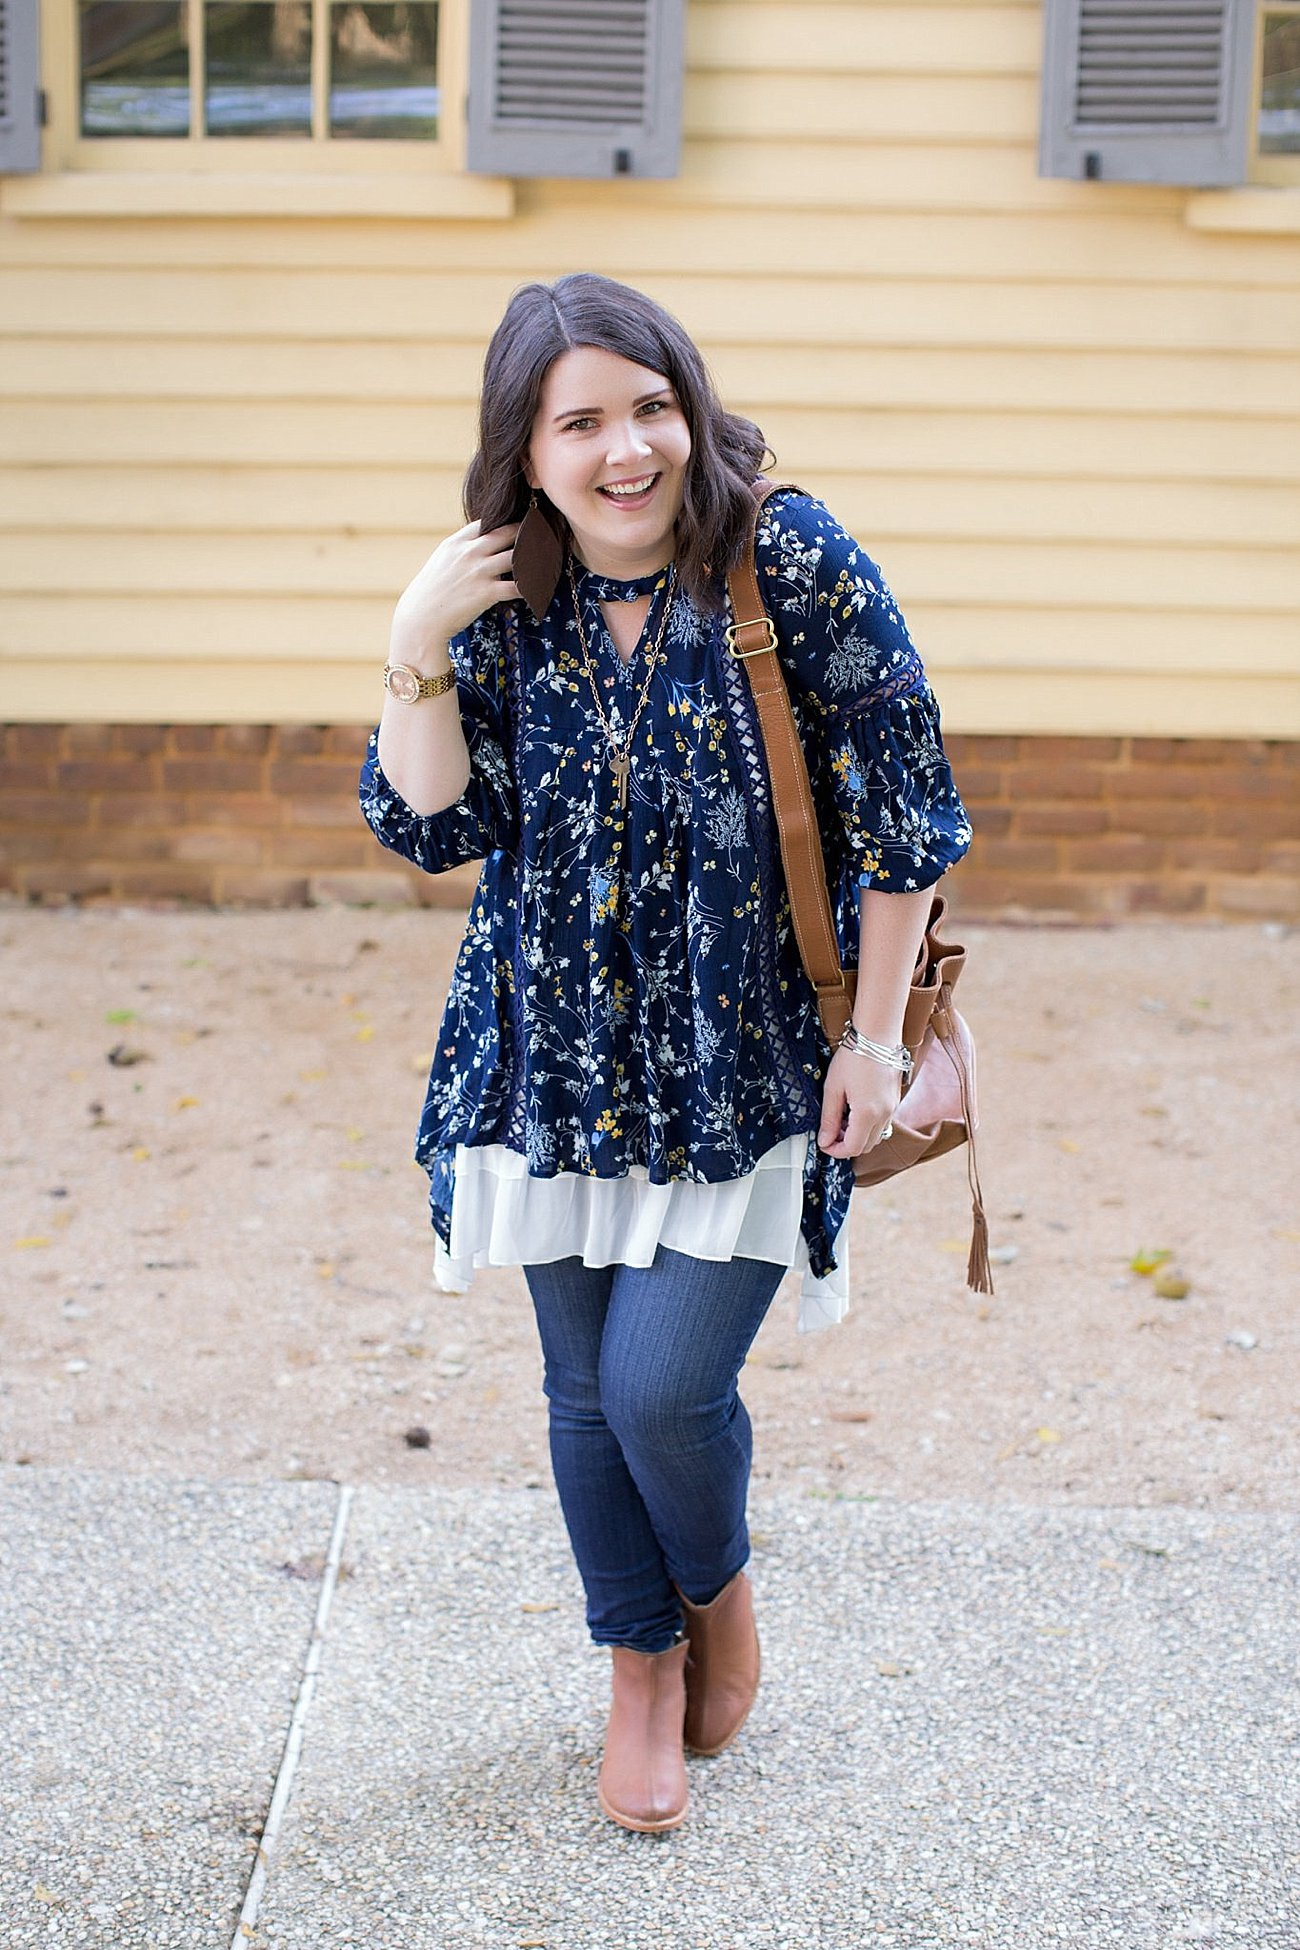 Grace & Lace peasant top and chiffon lace extender from The Flourish Market, Paige denim, Root Collective espe booties | Ethical Fashion, North Carolina Life and Style Blogger (2)